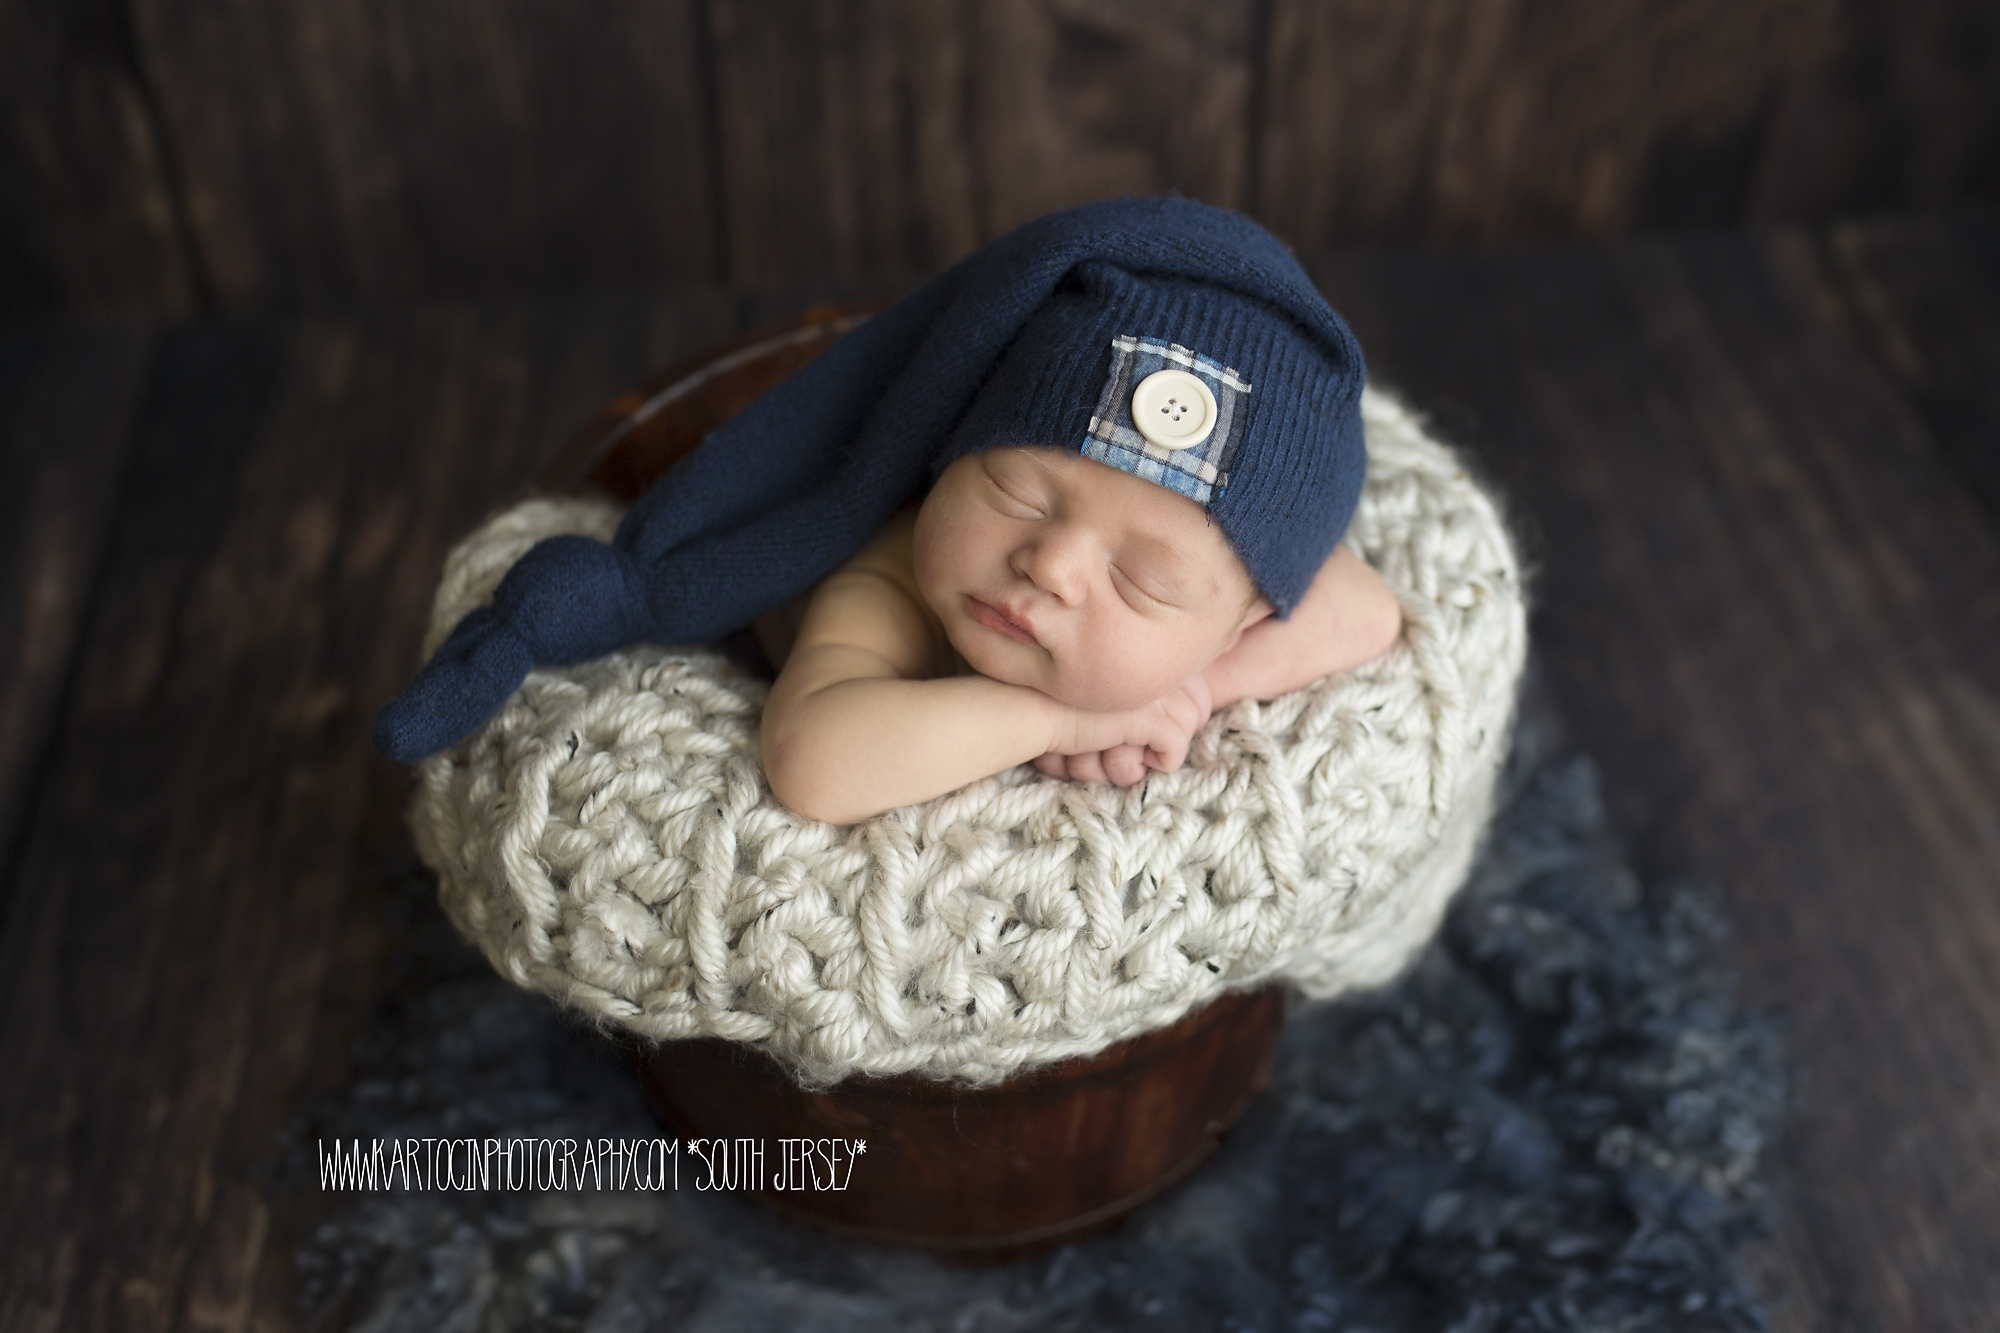 South Jersey Newborn Photographer